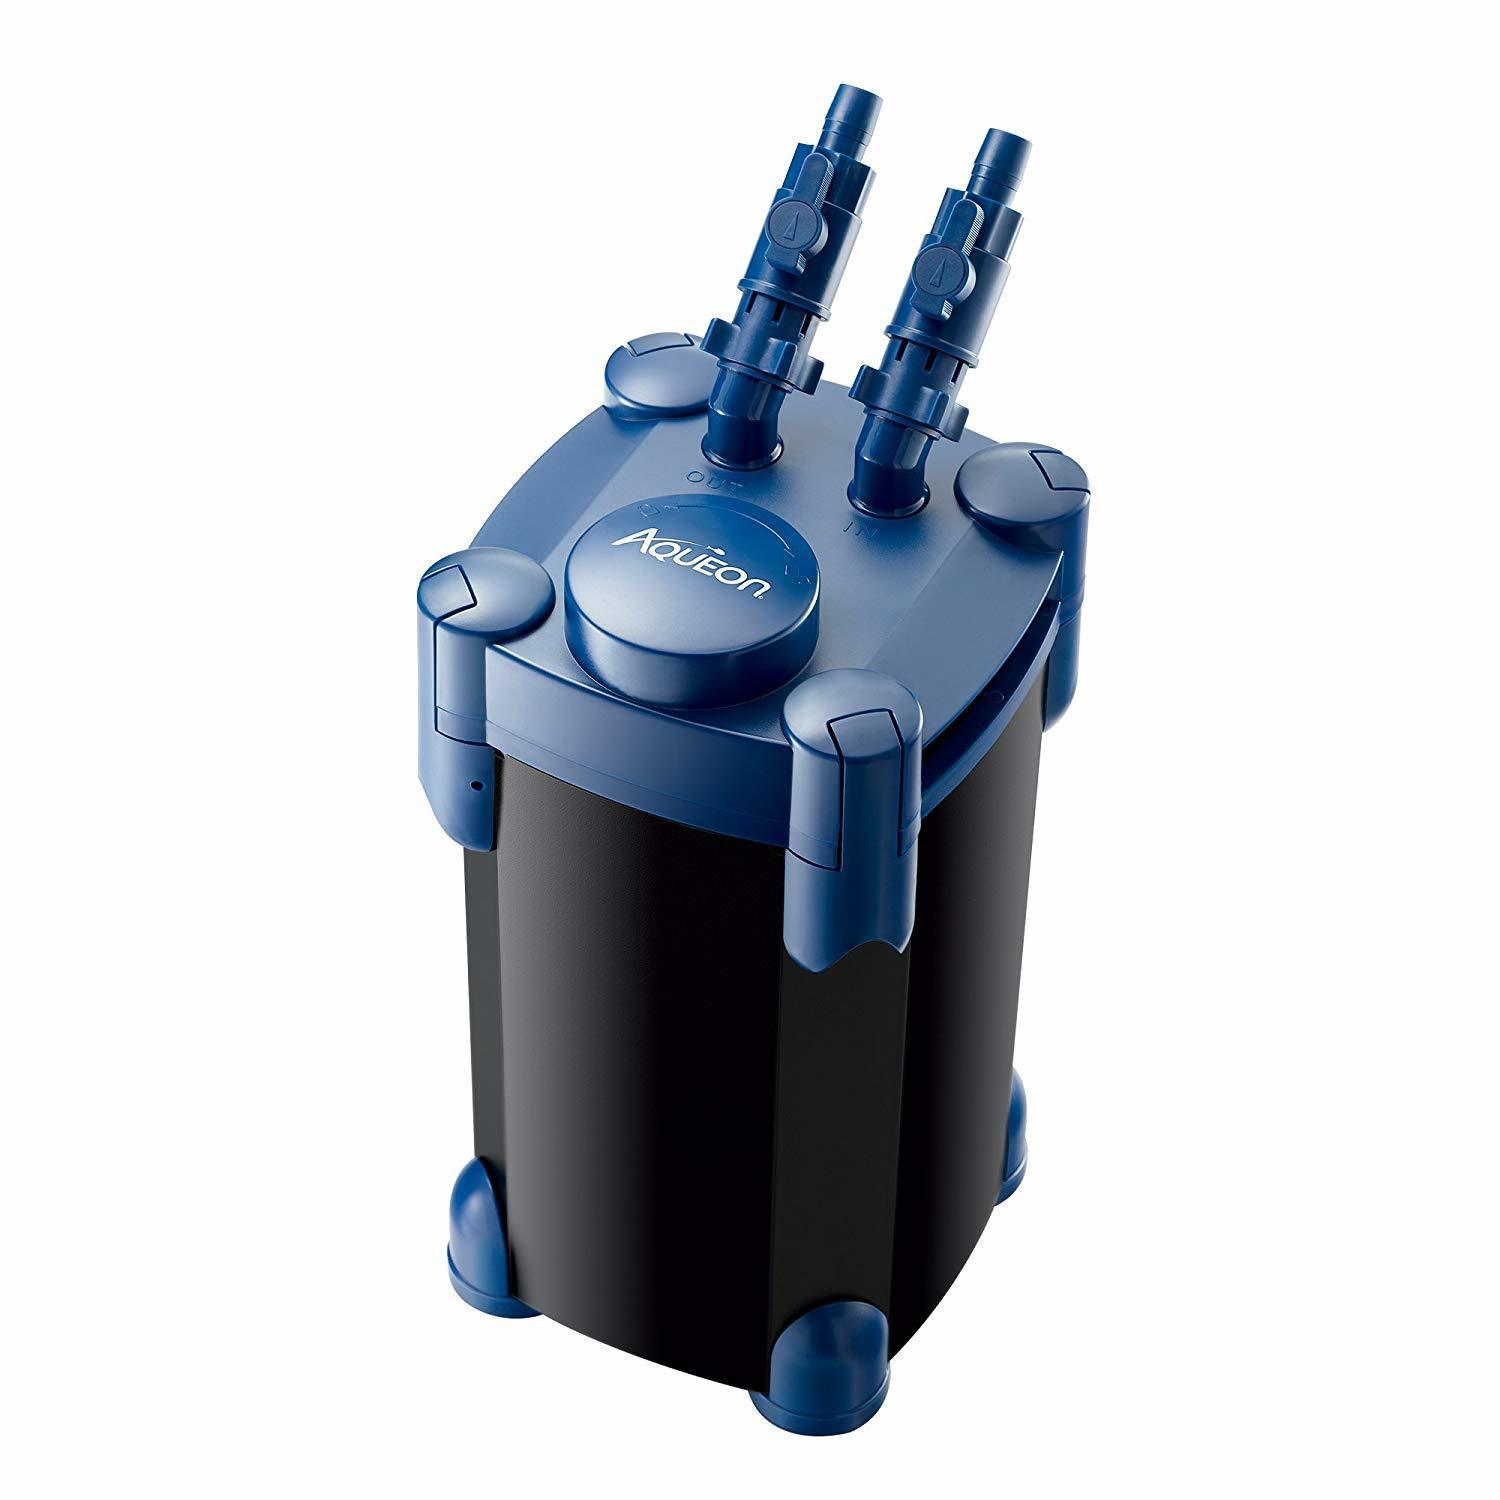 Aqueon QuietFlow Canister Filter, 55 gallons